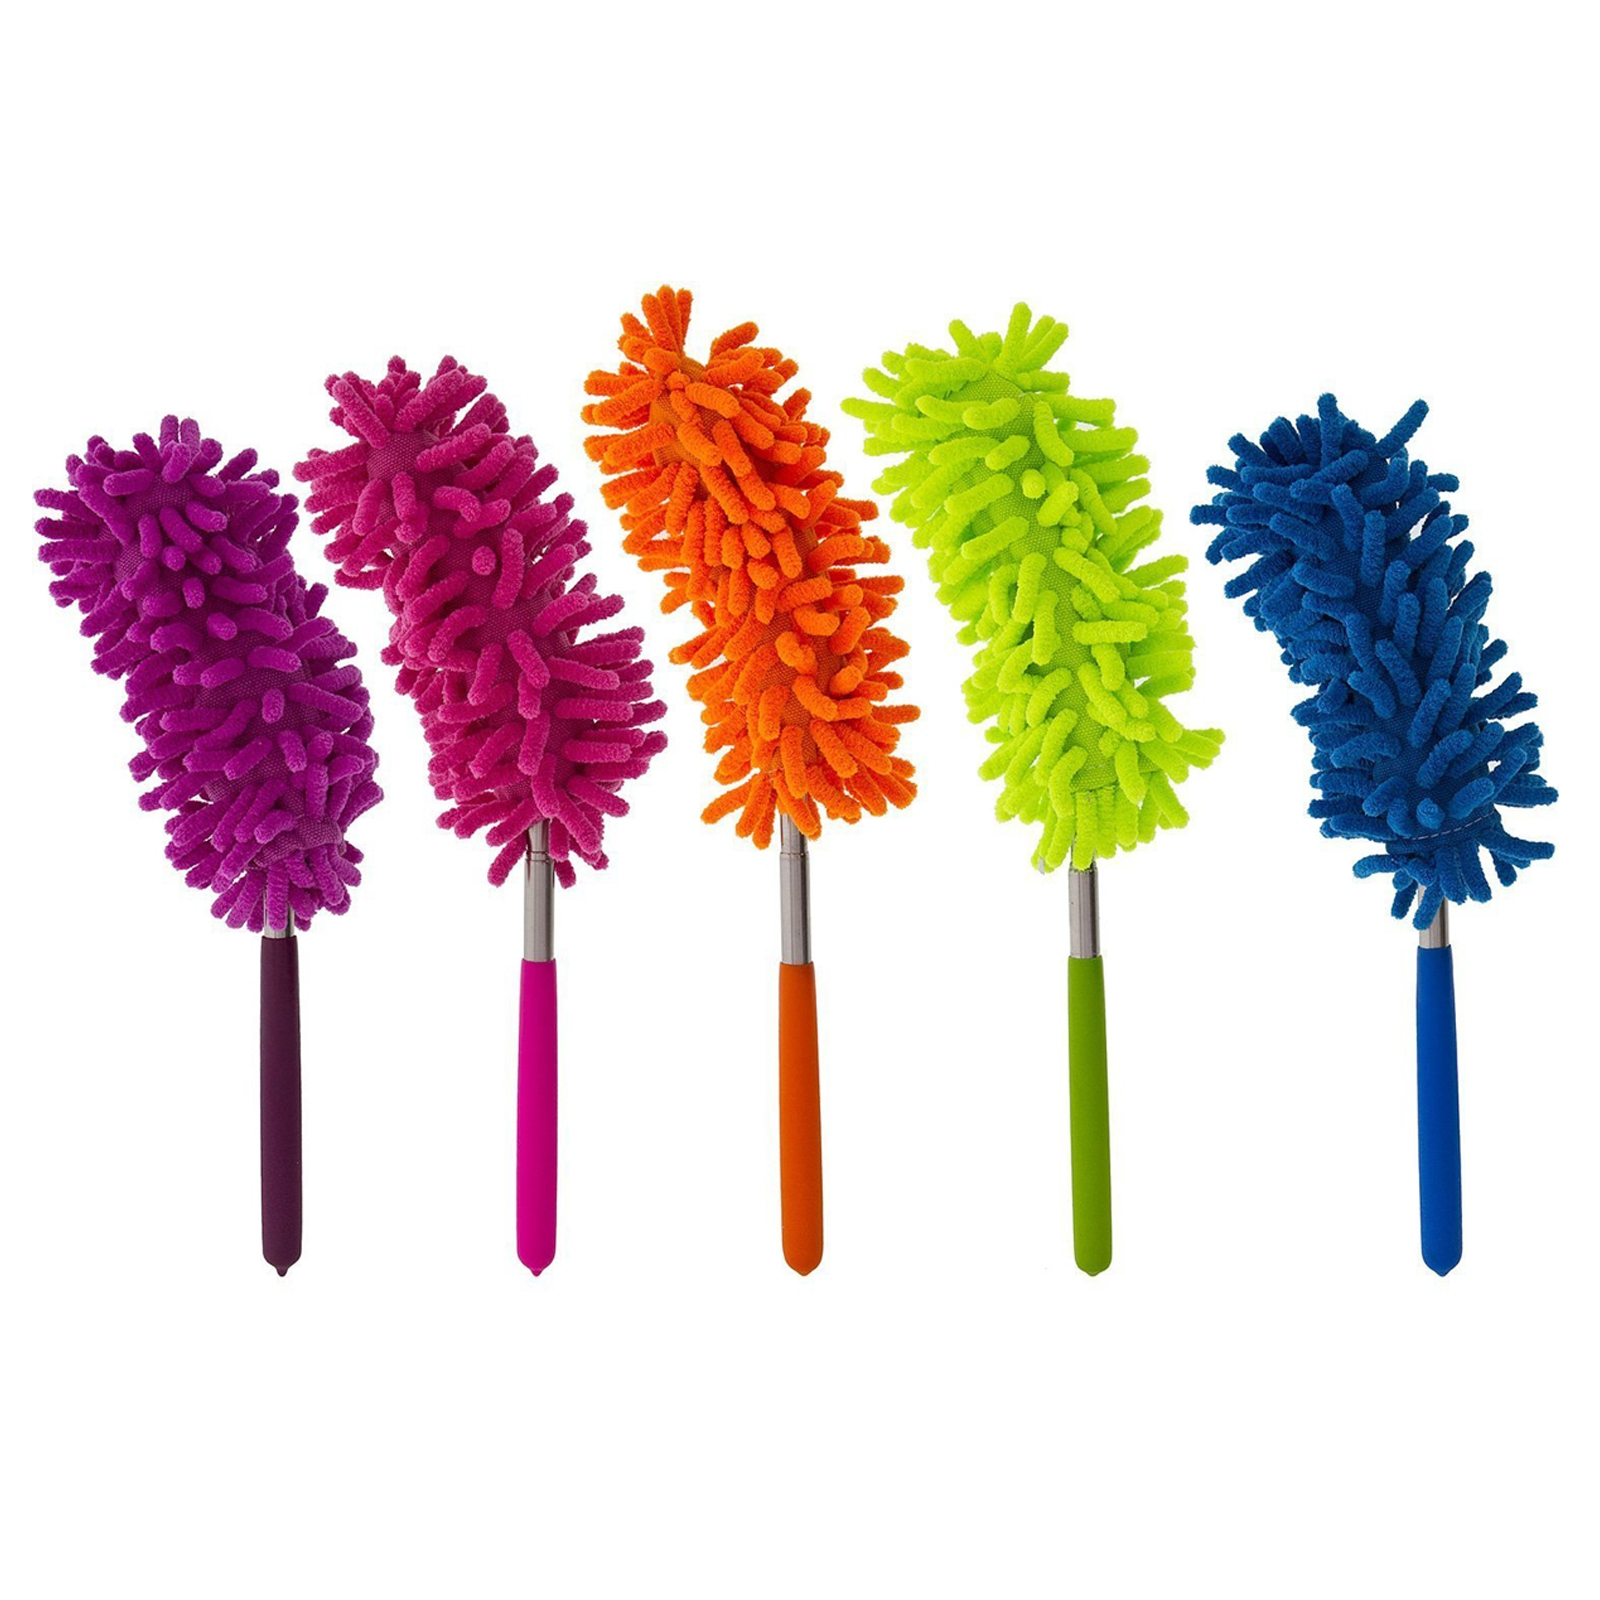 12pc Extendable Flexible Feather Duster For Home And Office Cleaning Supplies